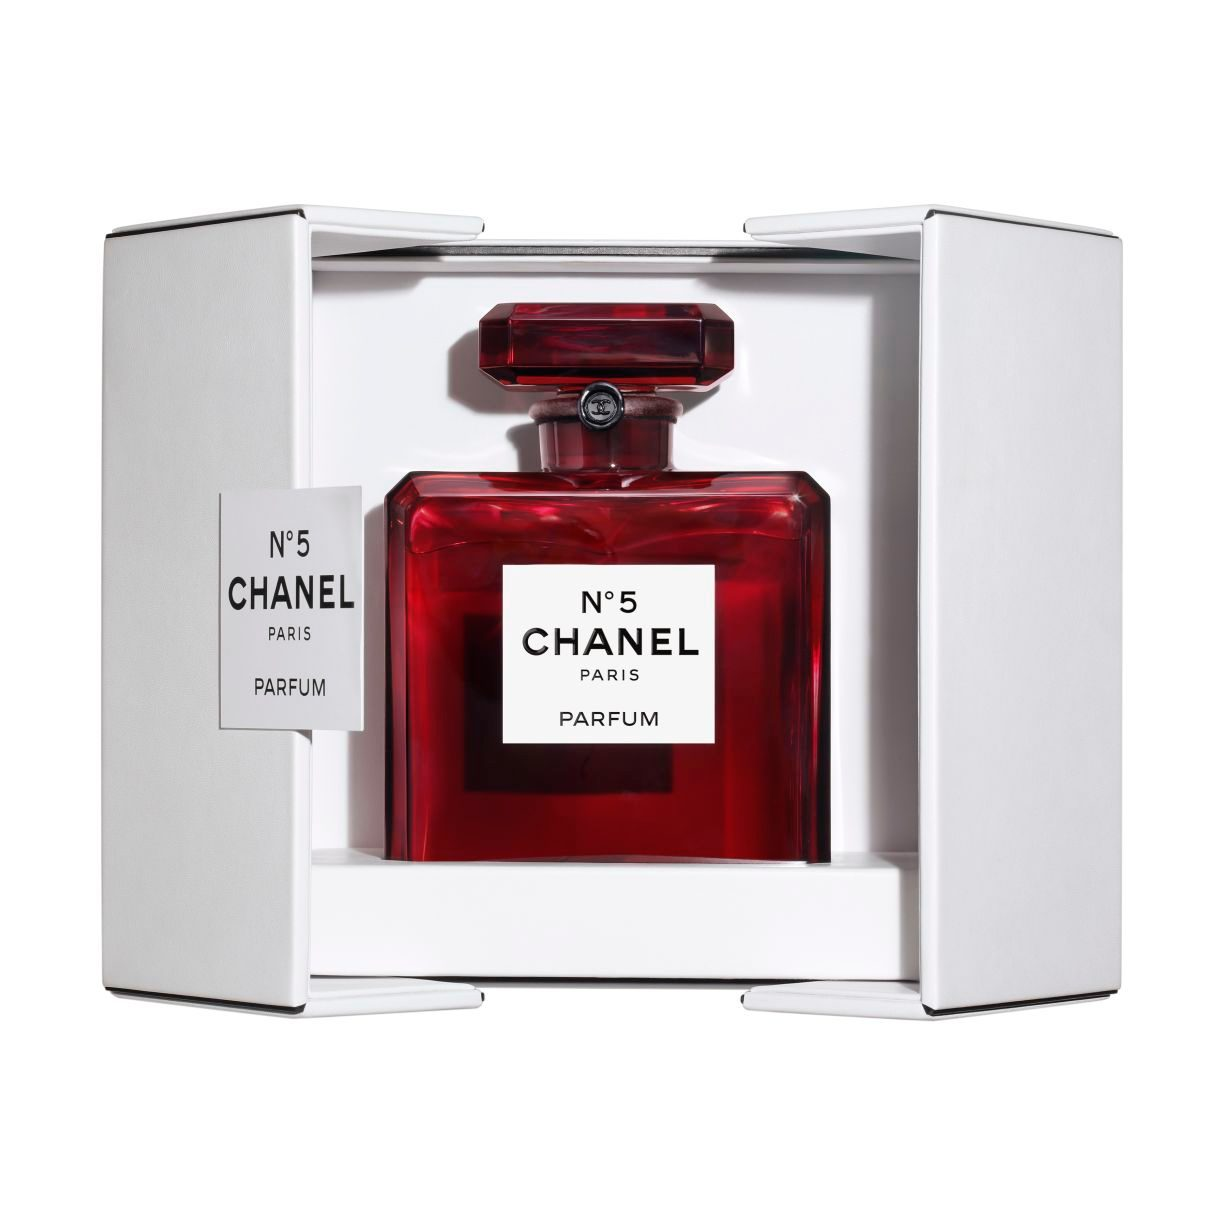 N°5 GRAND EXTRAIT BACCARAT LIMITIERTE EDITION 900ml